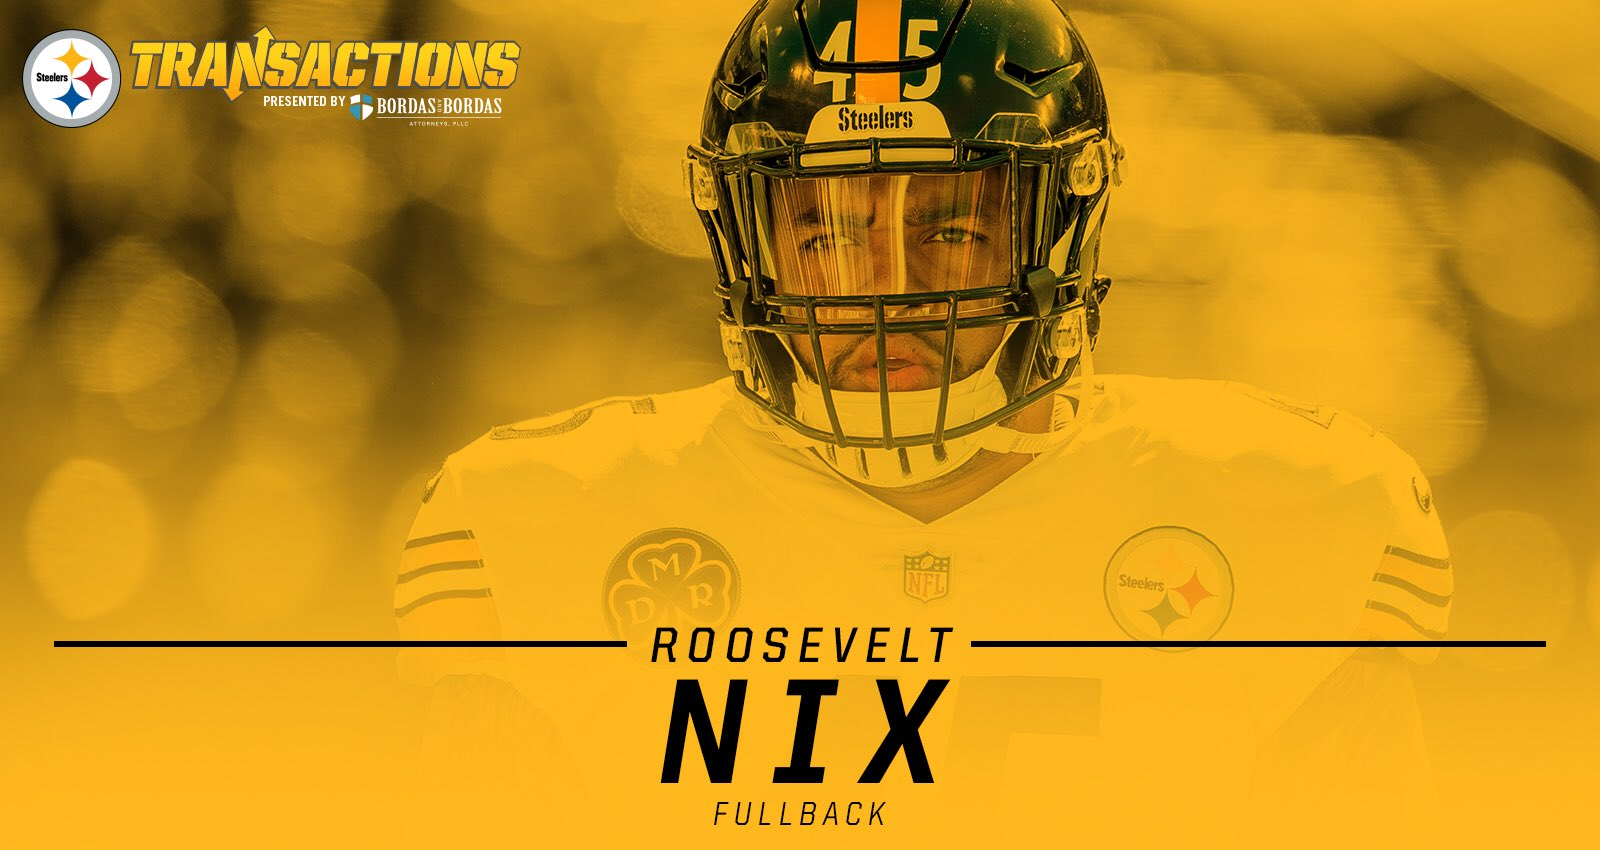 We have signed FB Roosevelt Nix to a new four-year deal.   MORE: https://t.co/3ehqIEnOD6 https://t.co/FrWcq1X2eE